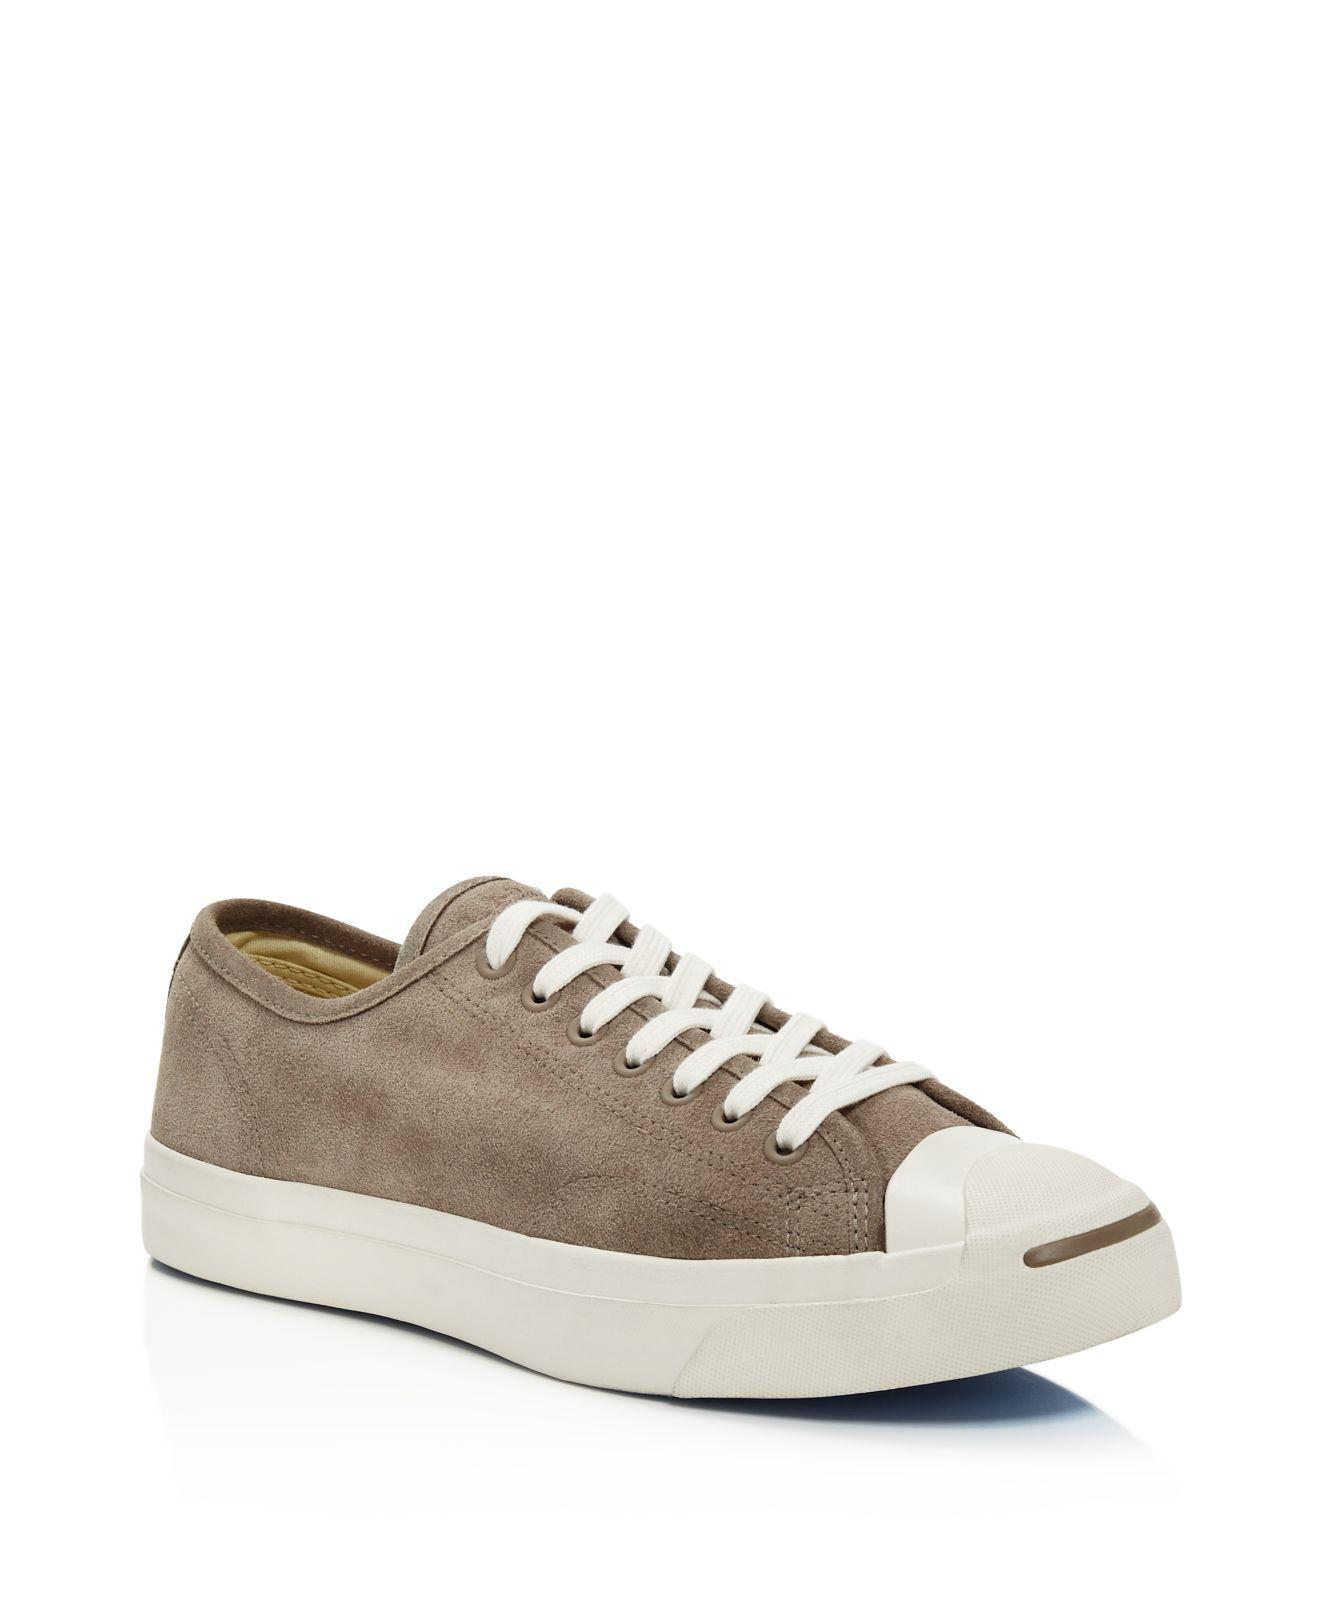 Converse Men's Jack Purcell Vintage Suede Lace Up Sneakers 8xWHOOk